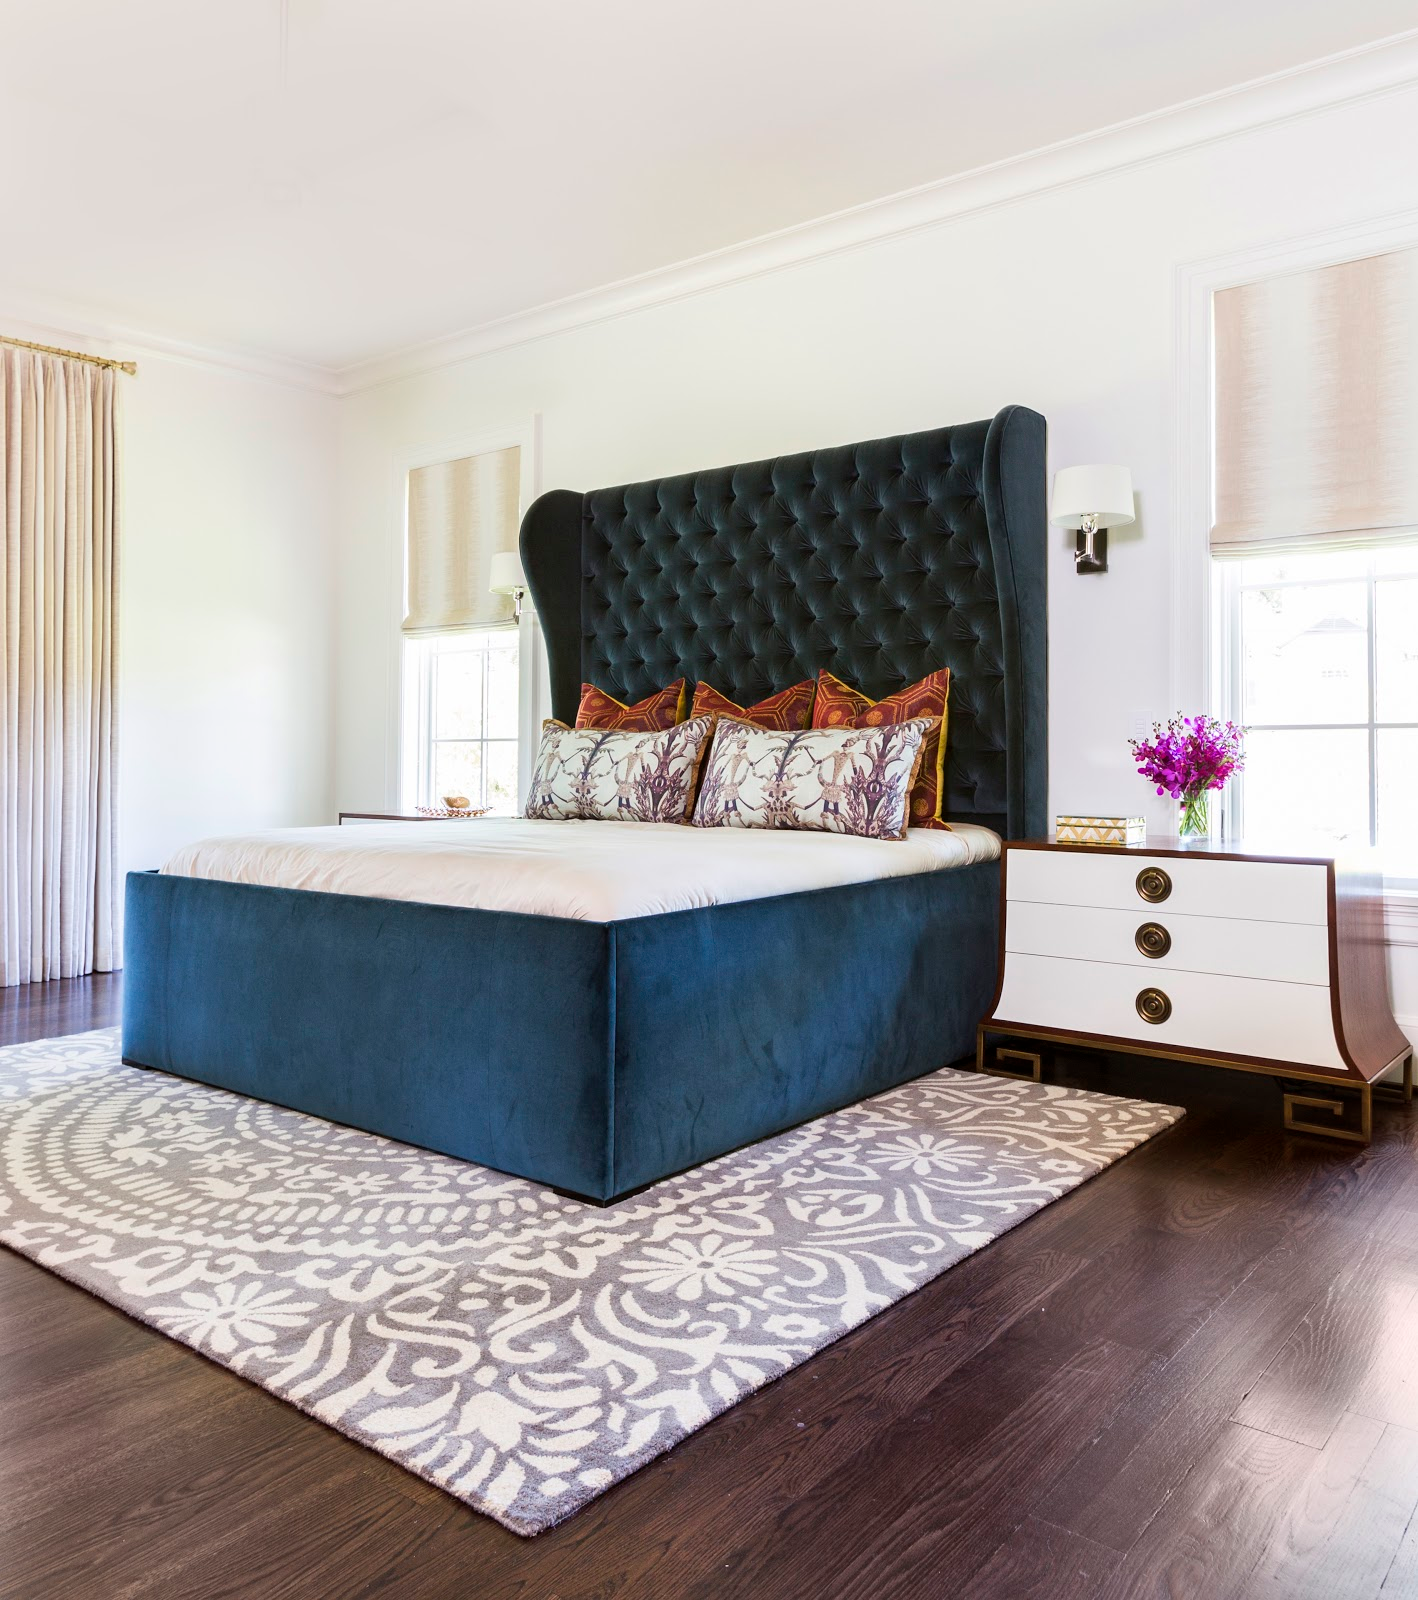 Blue velvet tufted headboard with organic neutral rug in master bedroom - laura u interior design